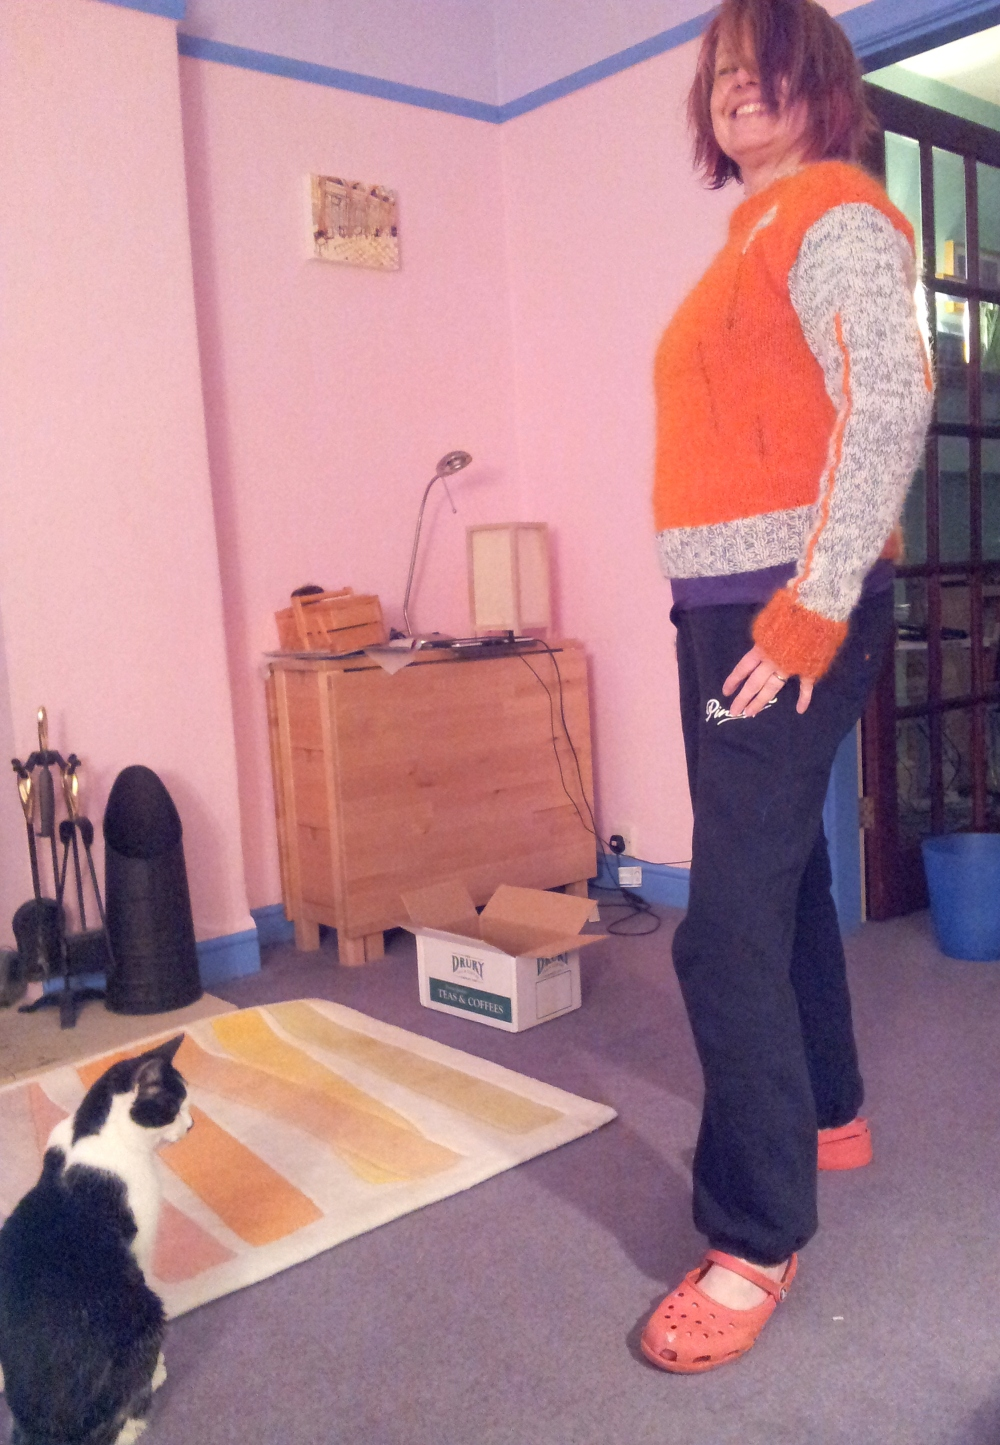 Cat casts a critical eye over the new jumper.